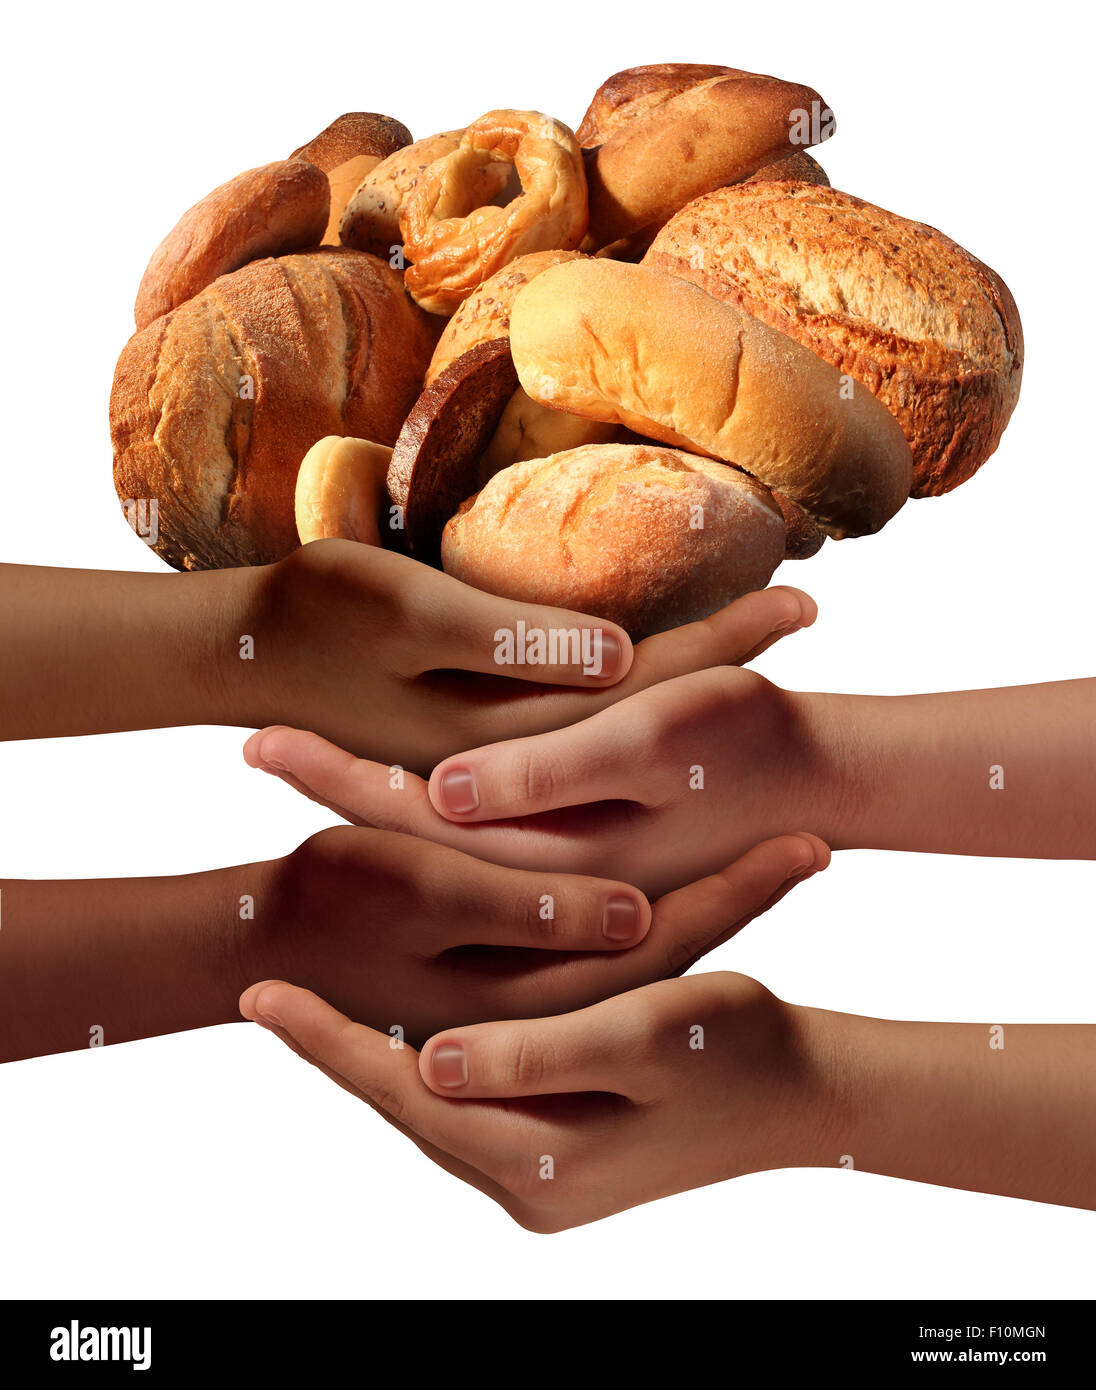 Community feed the poor assistance concept with a group of charitable hands representing diverse groups of people - Stock Image